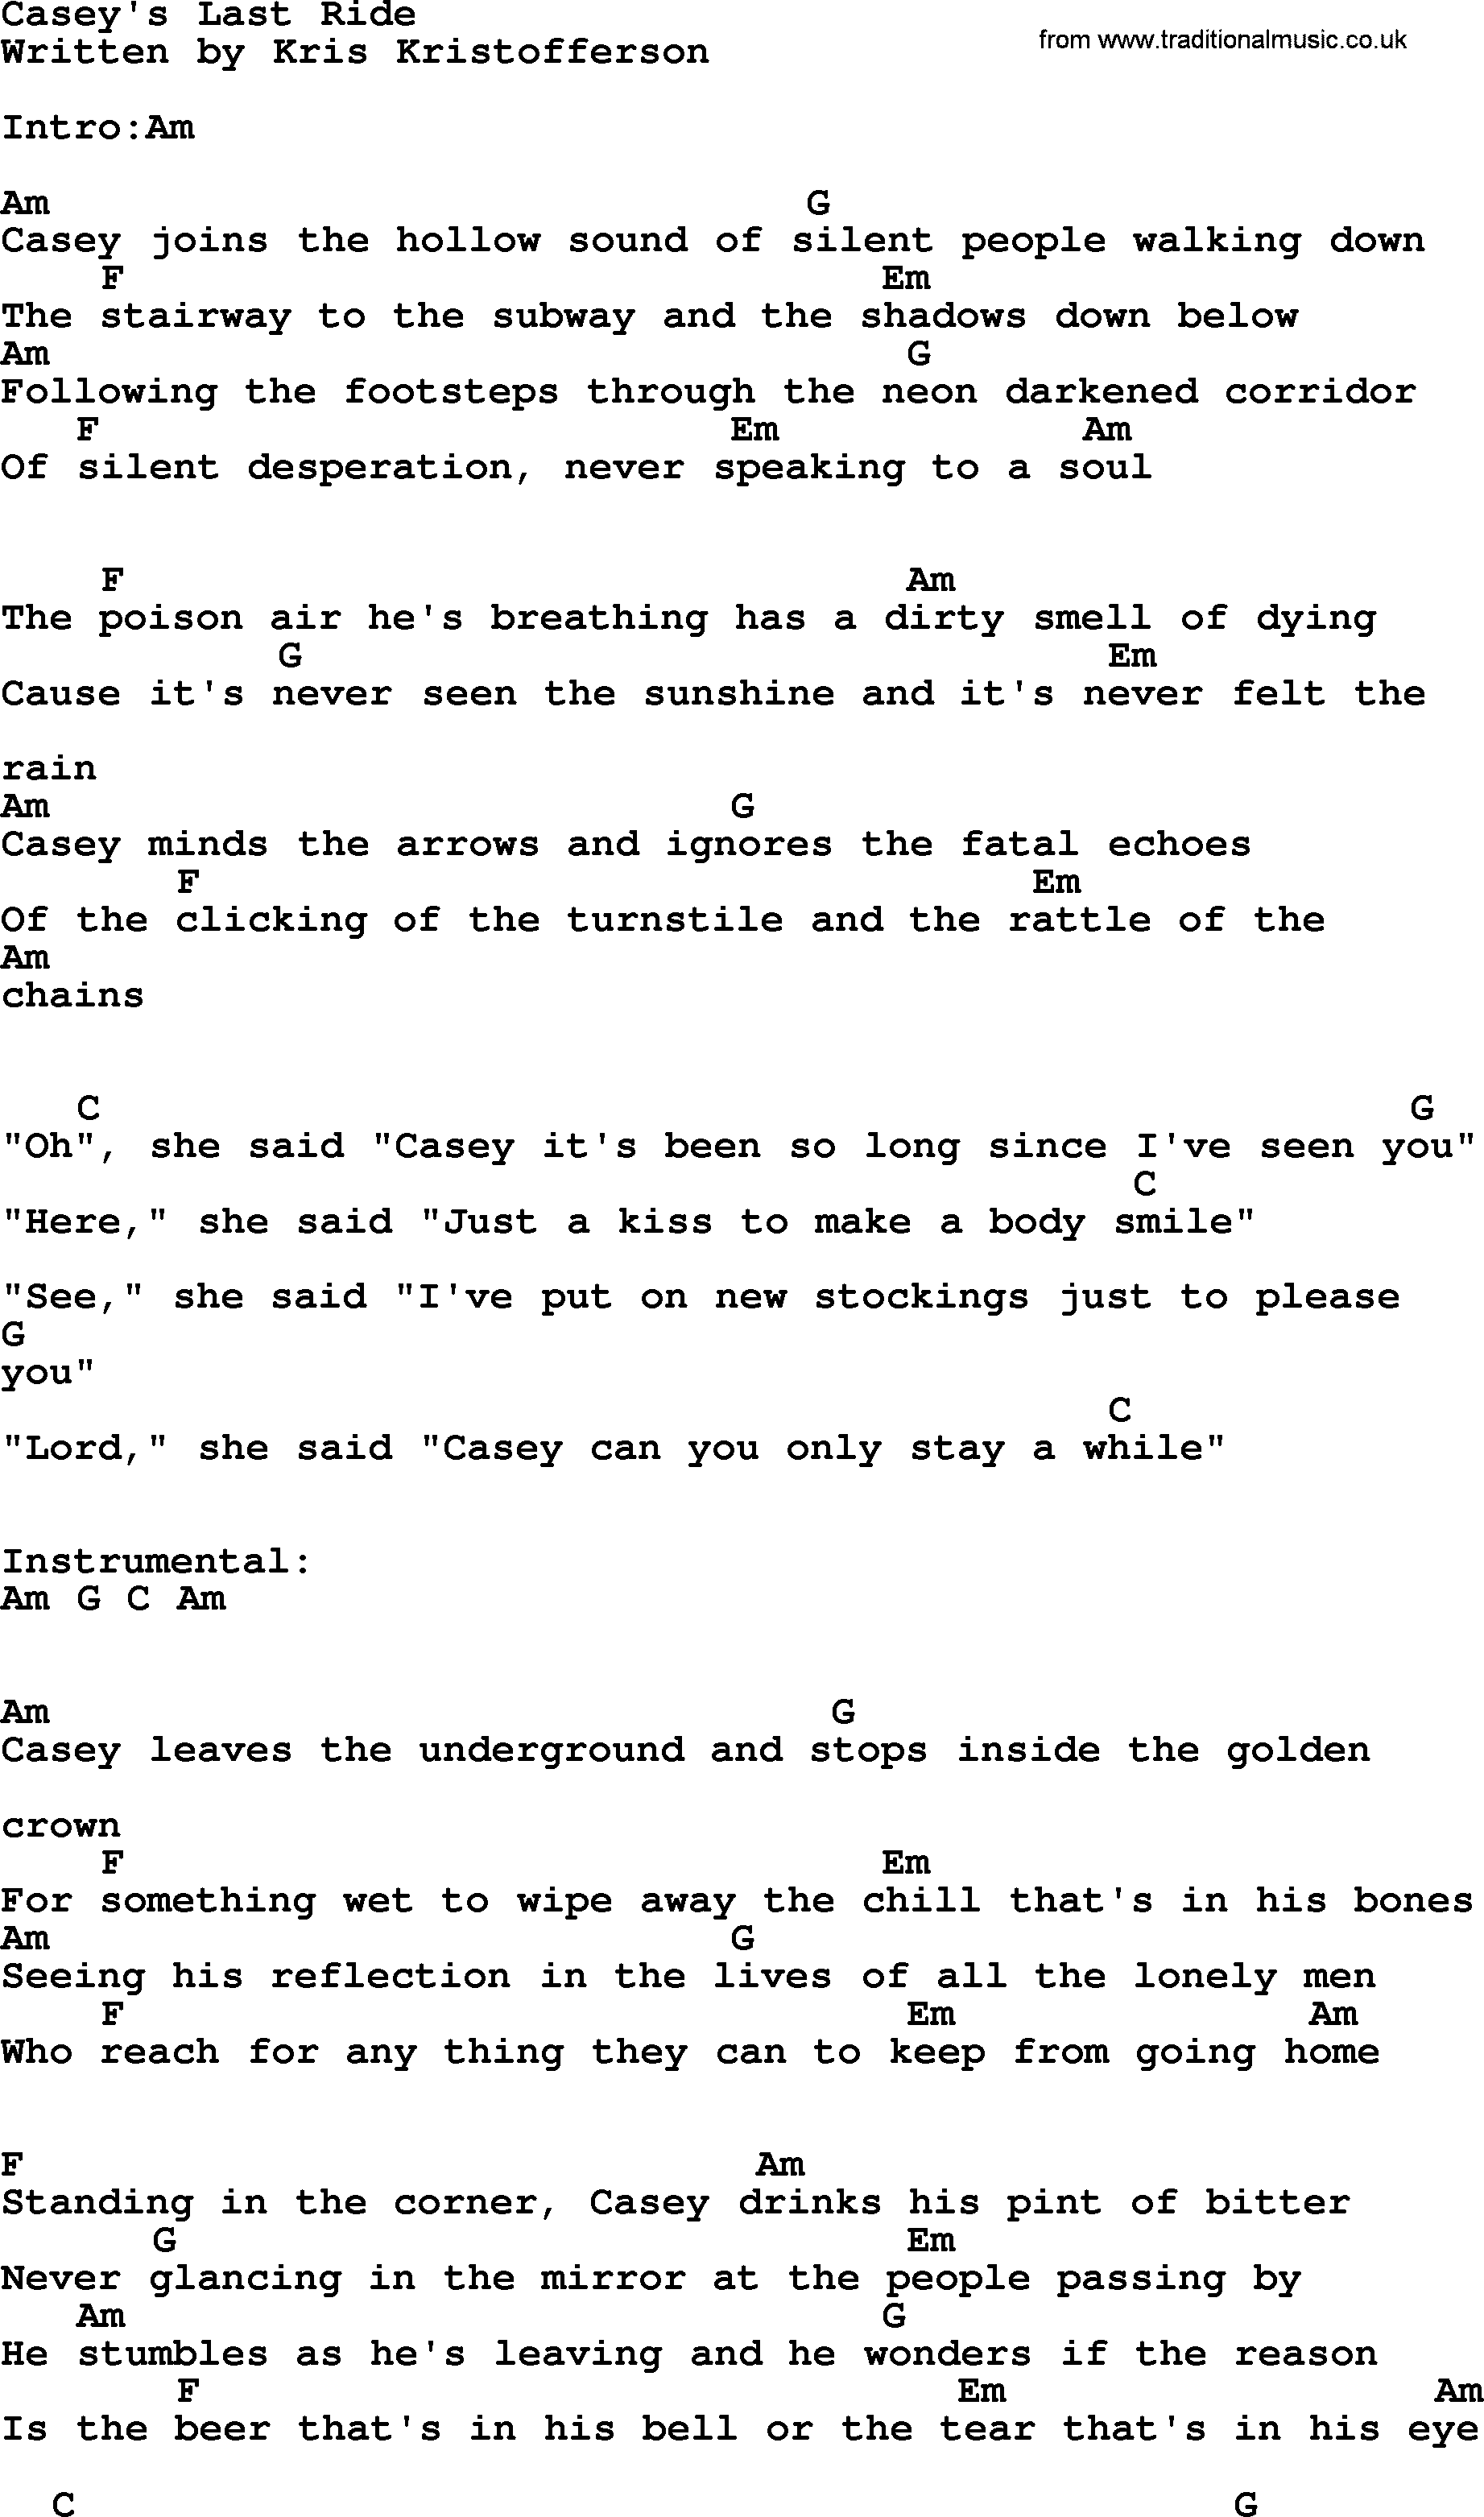 Johnny cash song caseys last ride lyrics and chords johnny cash song caseys last ride lyrics and chords hexwebz Images